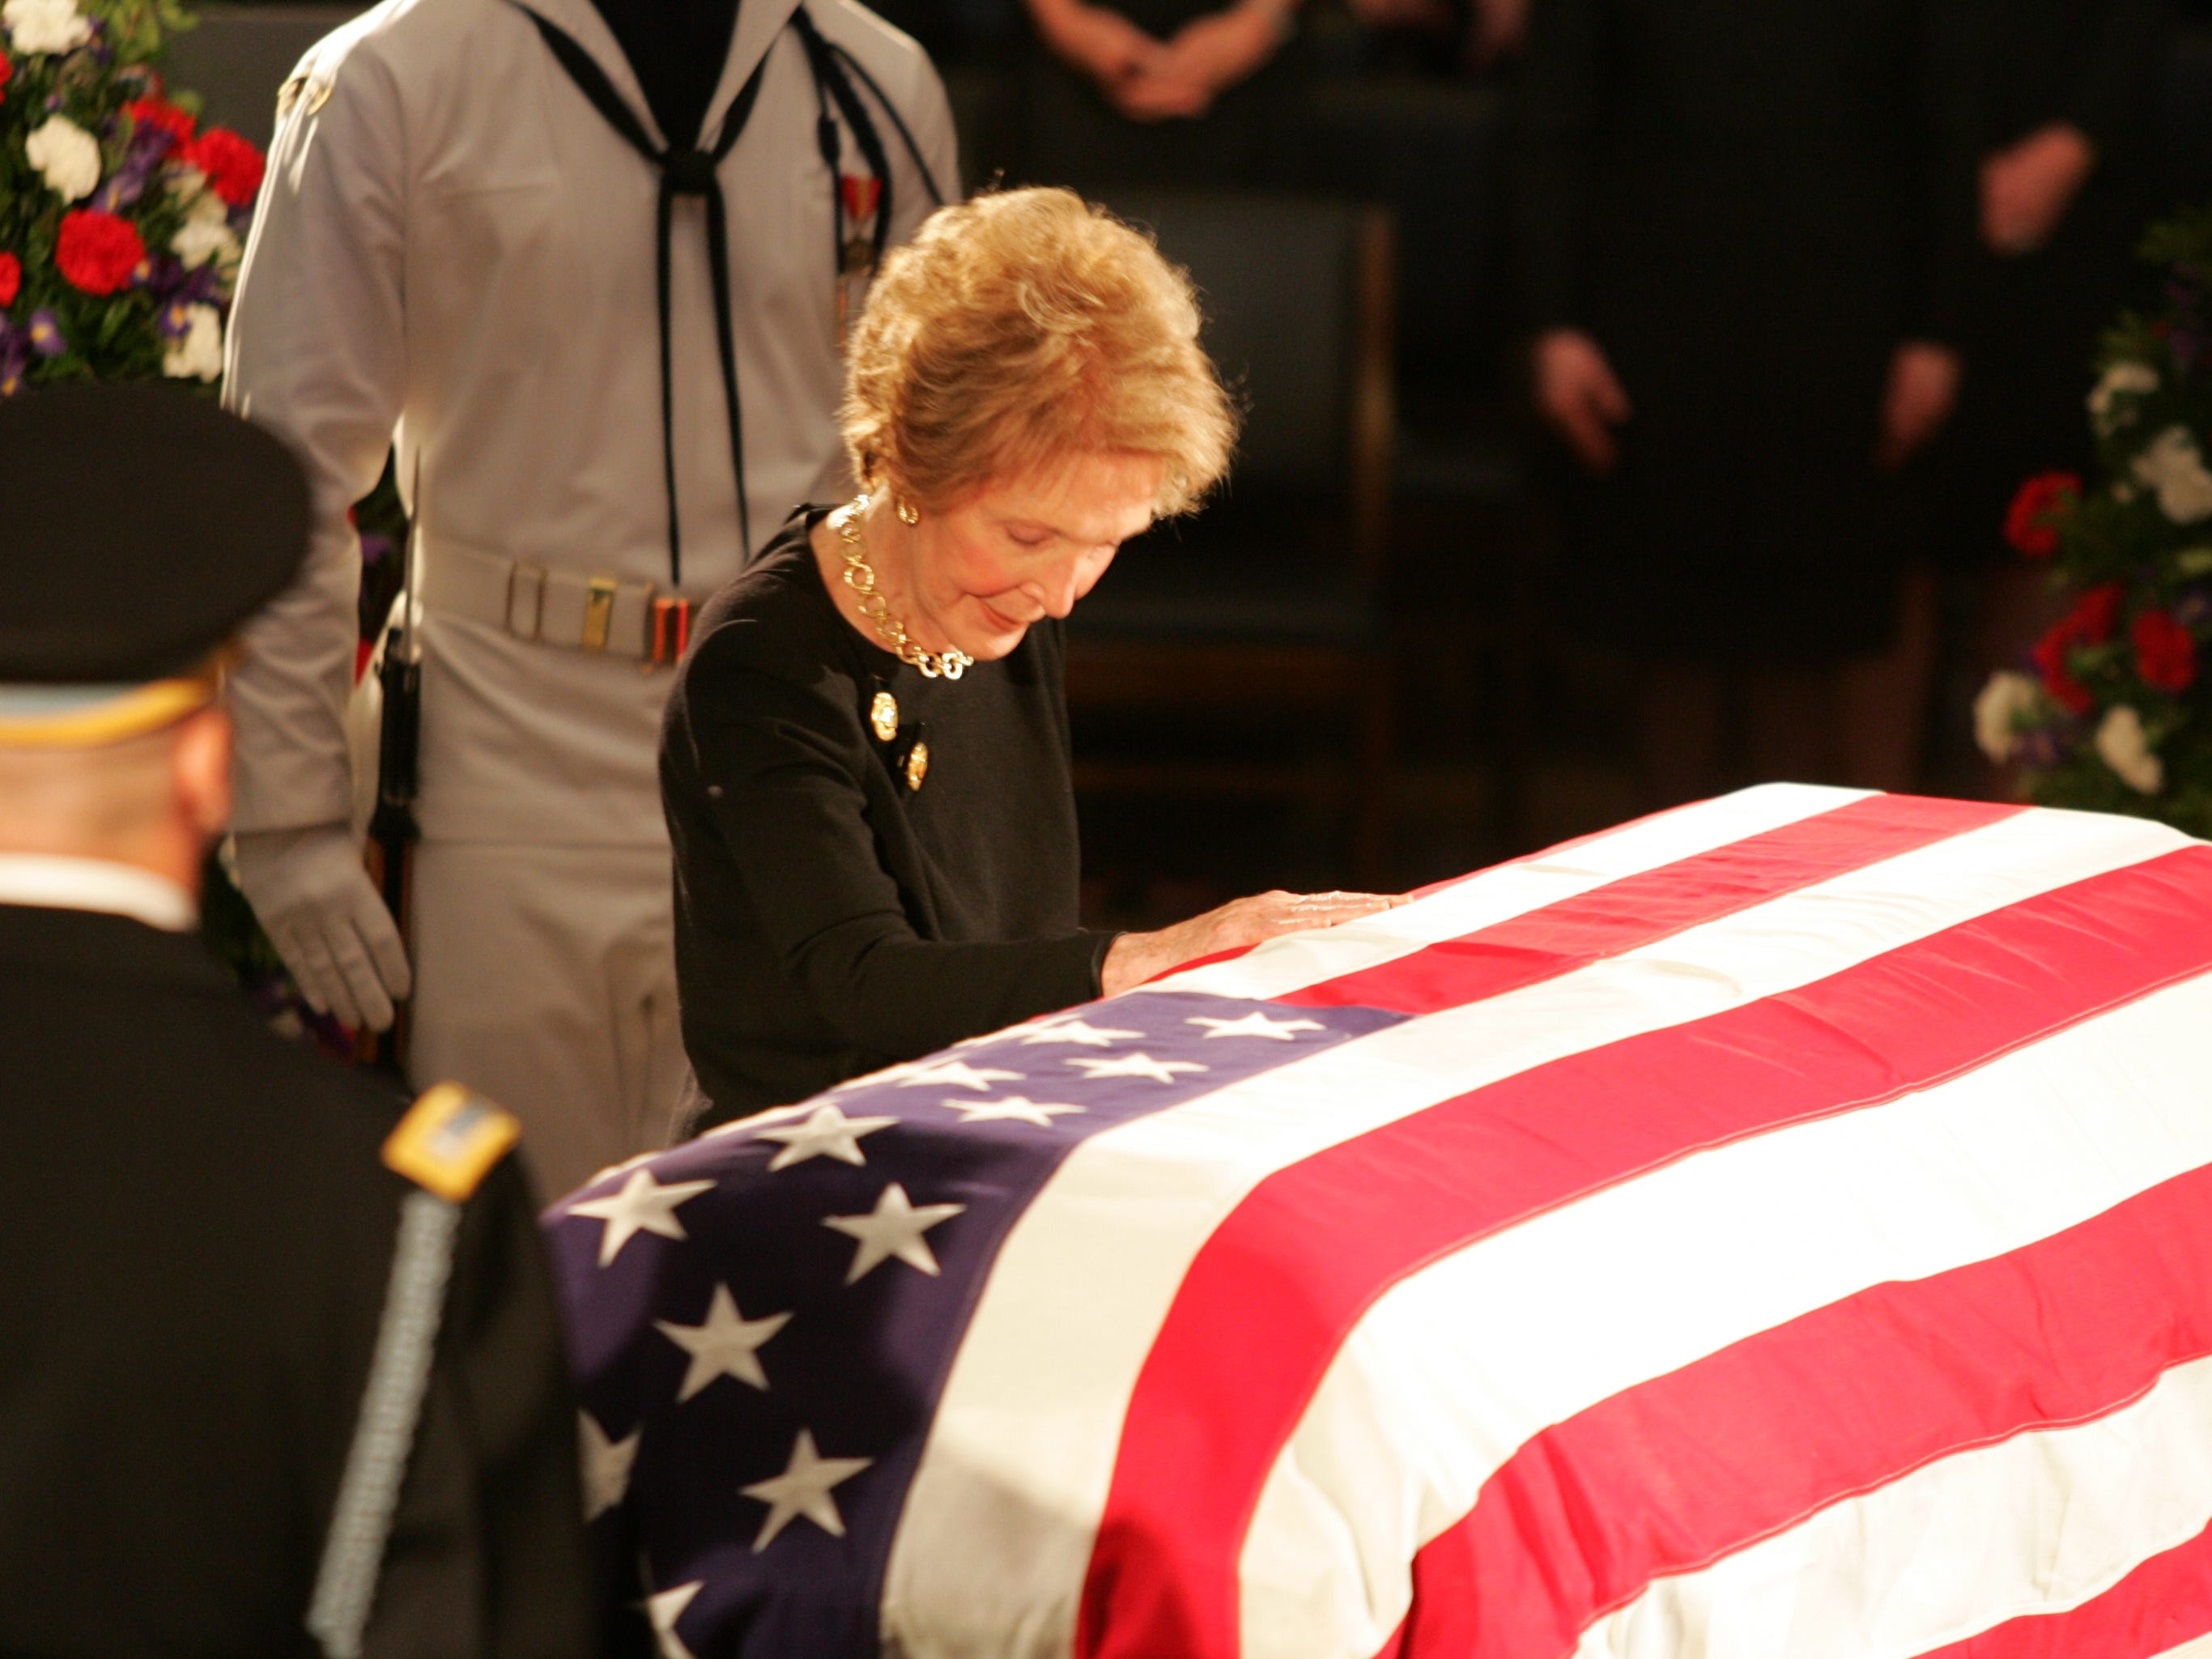 Nancy Reagan bows her head and touches the casket of her husband, President Ronald Reagan, at a service in the Rotunda of the Capitol, June 9, 2004.